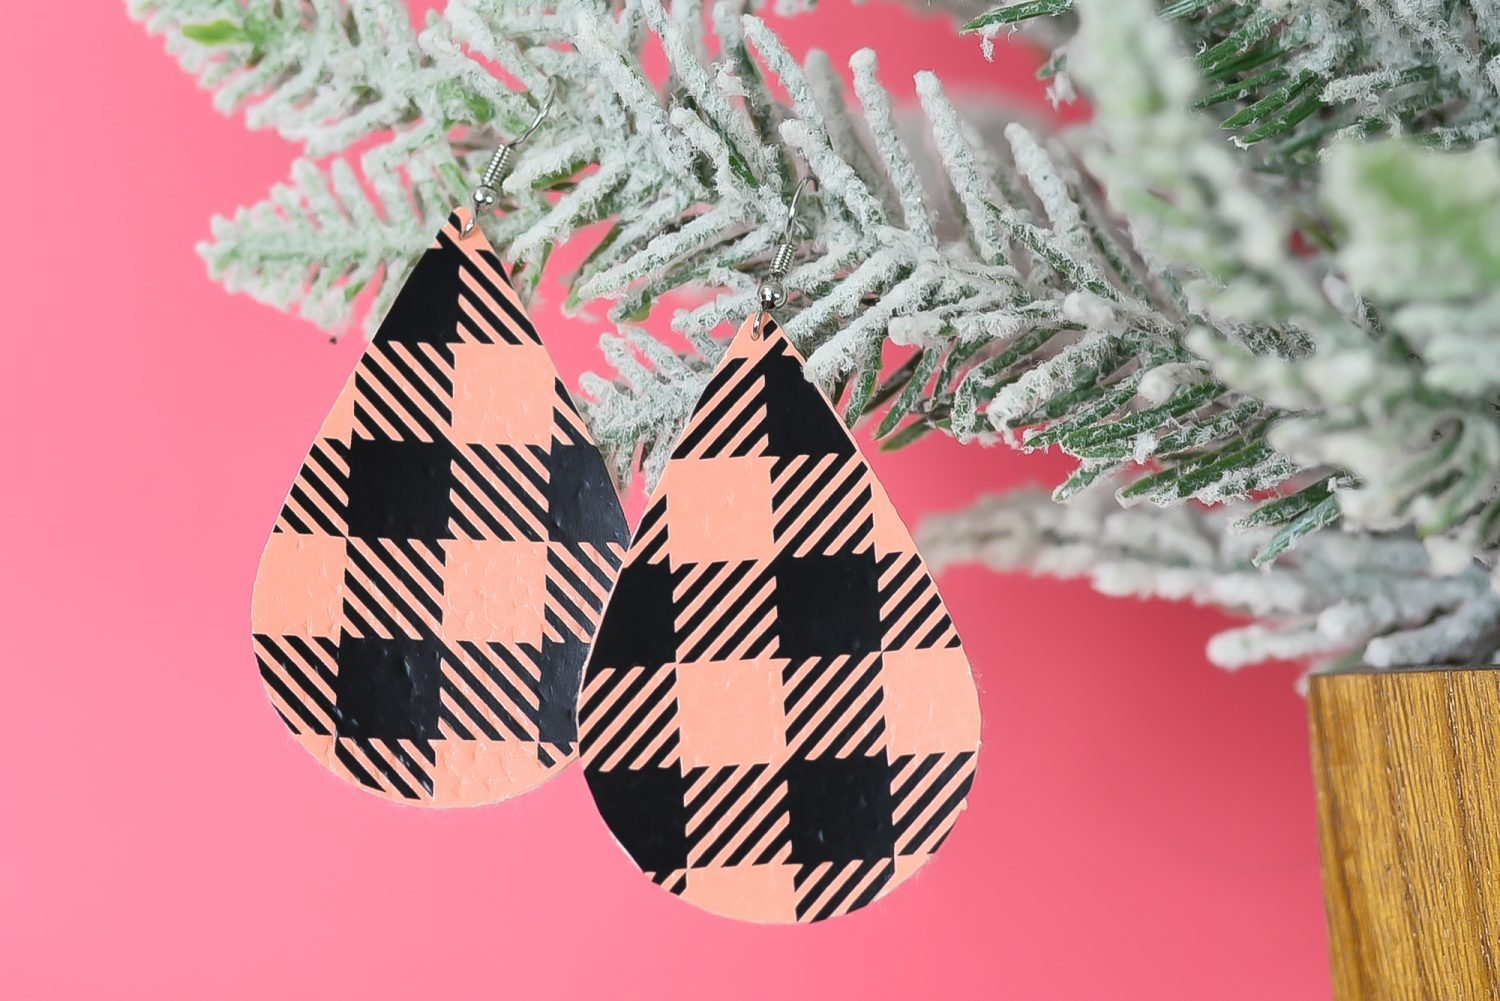 Finished pinkbuffalo plaid earrings hanging from a christmas tree branch